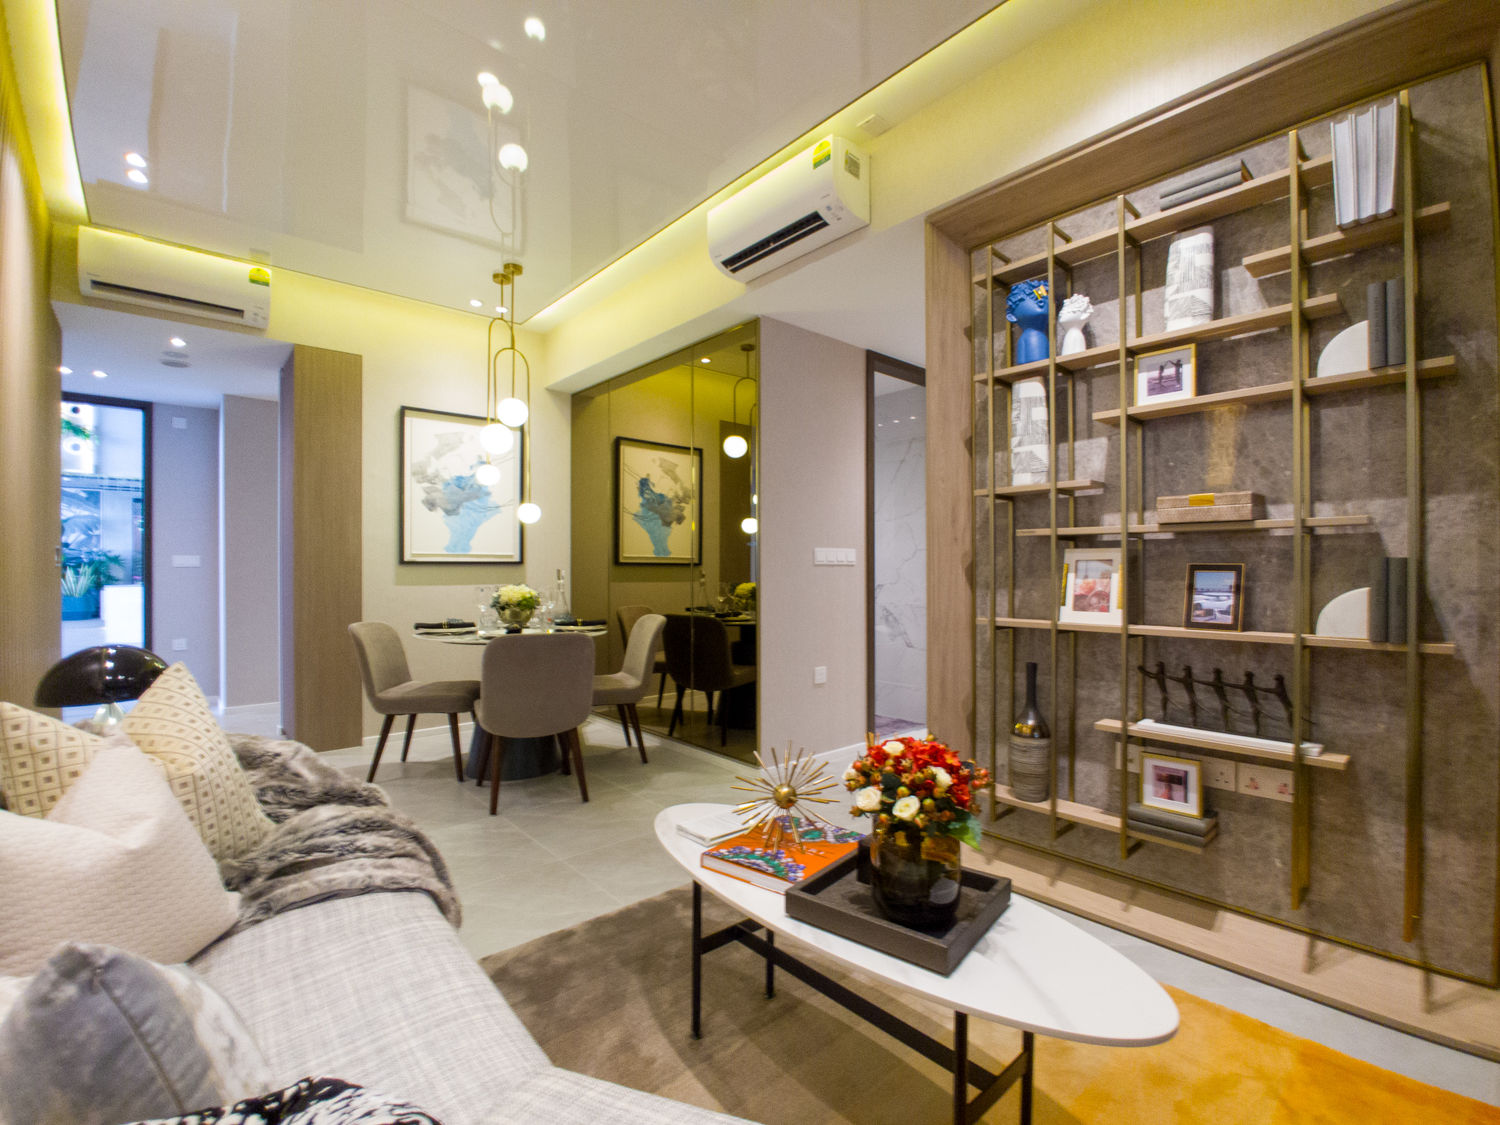 THE WATERGARDENS 2BR SHOWFLAT - EDGEPROP SINGAPORE